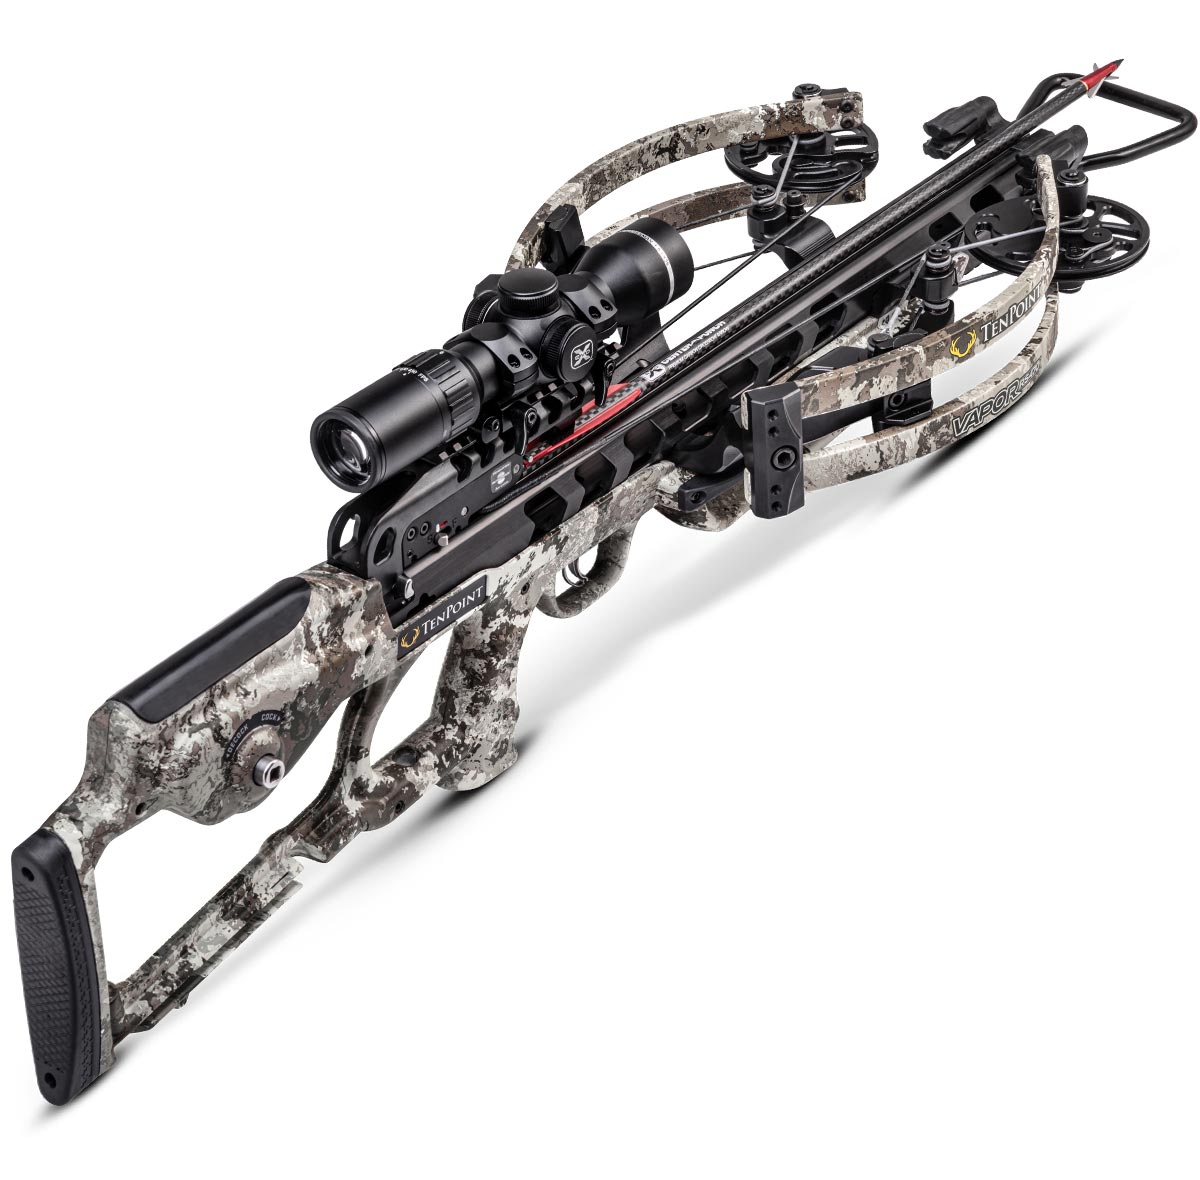 Vapor RS470 Crossbow Quartering Away Studio Image